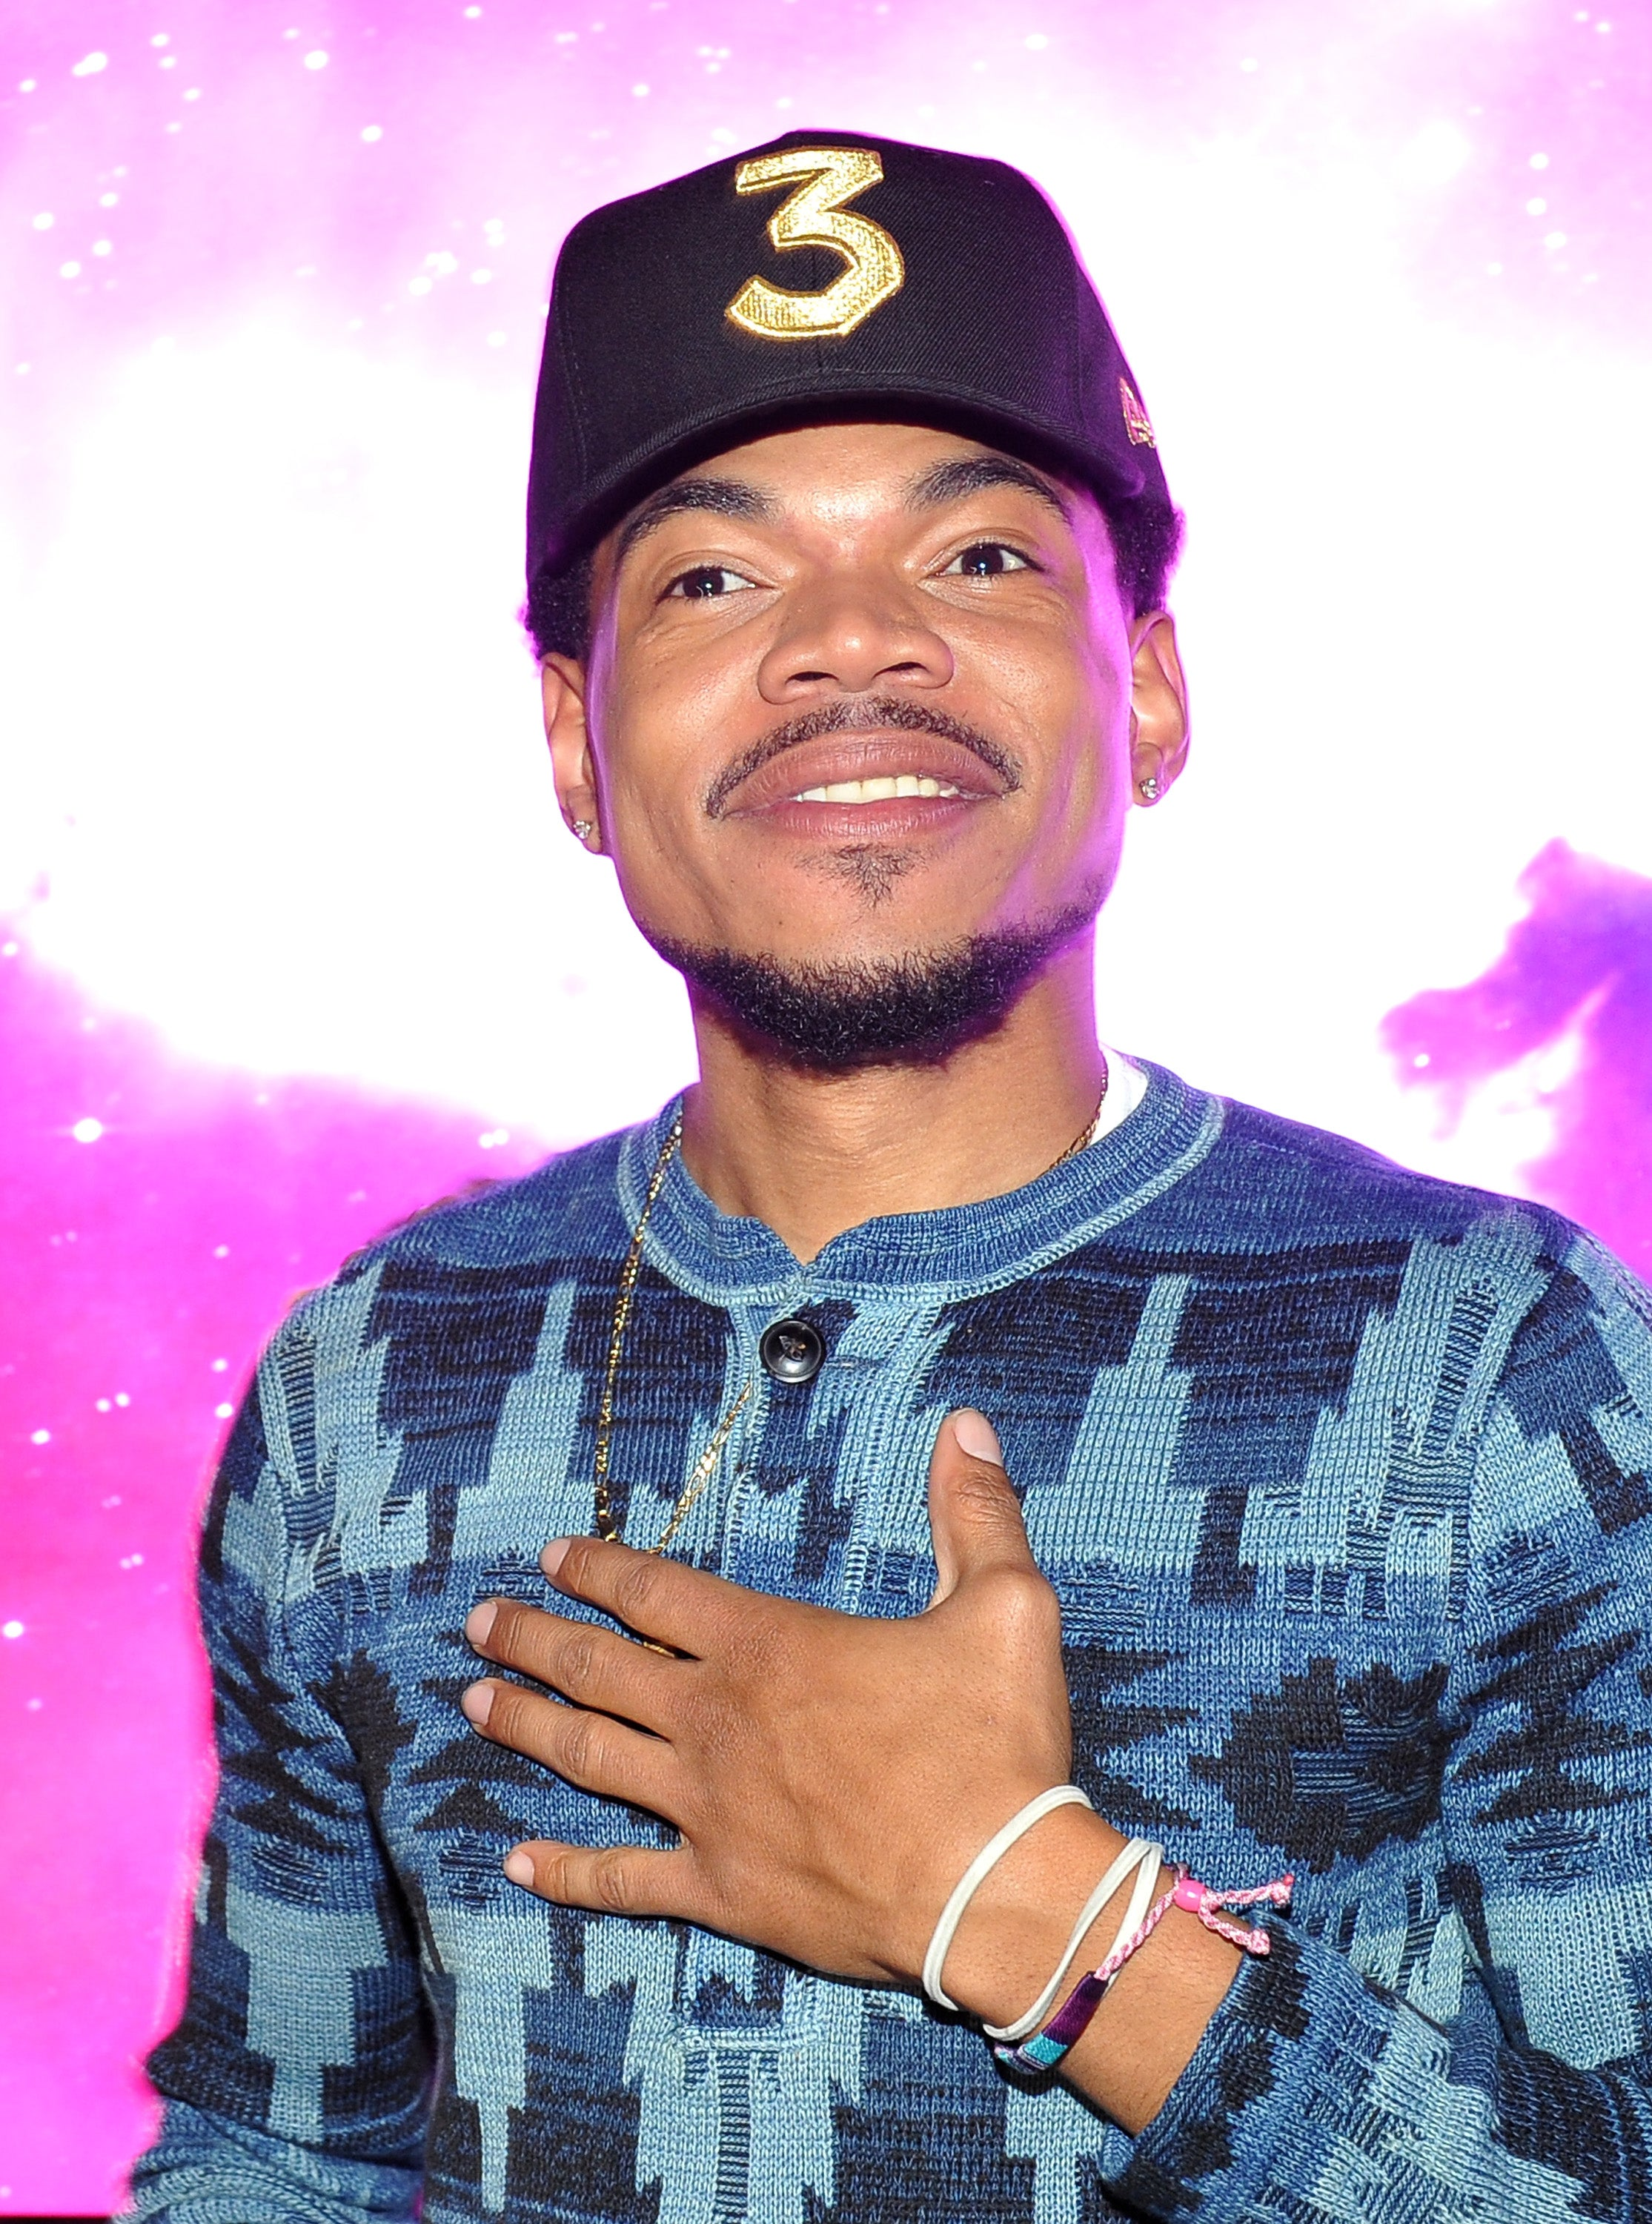 Fans Really Want Chance The Rapper To Be Mayor Of Chicago